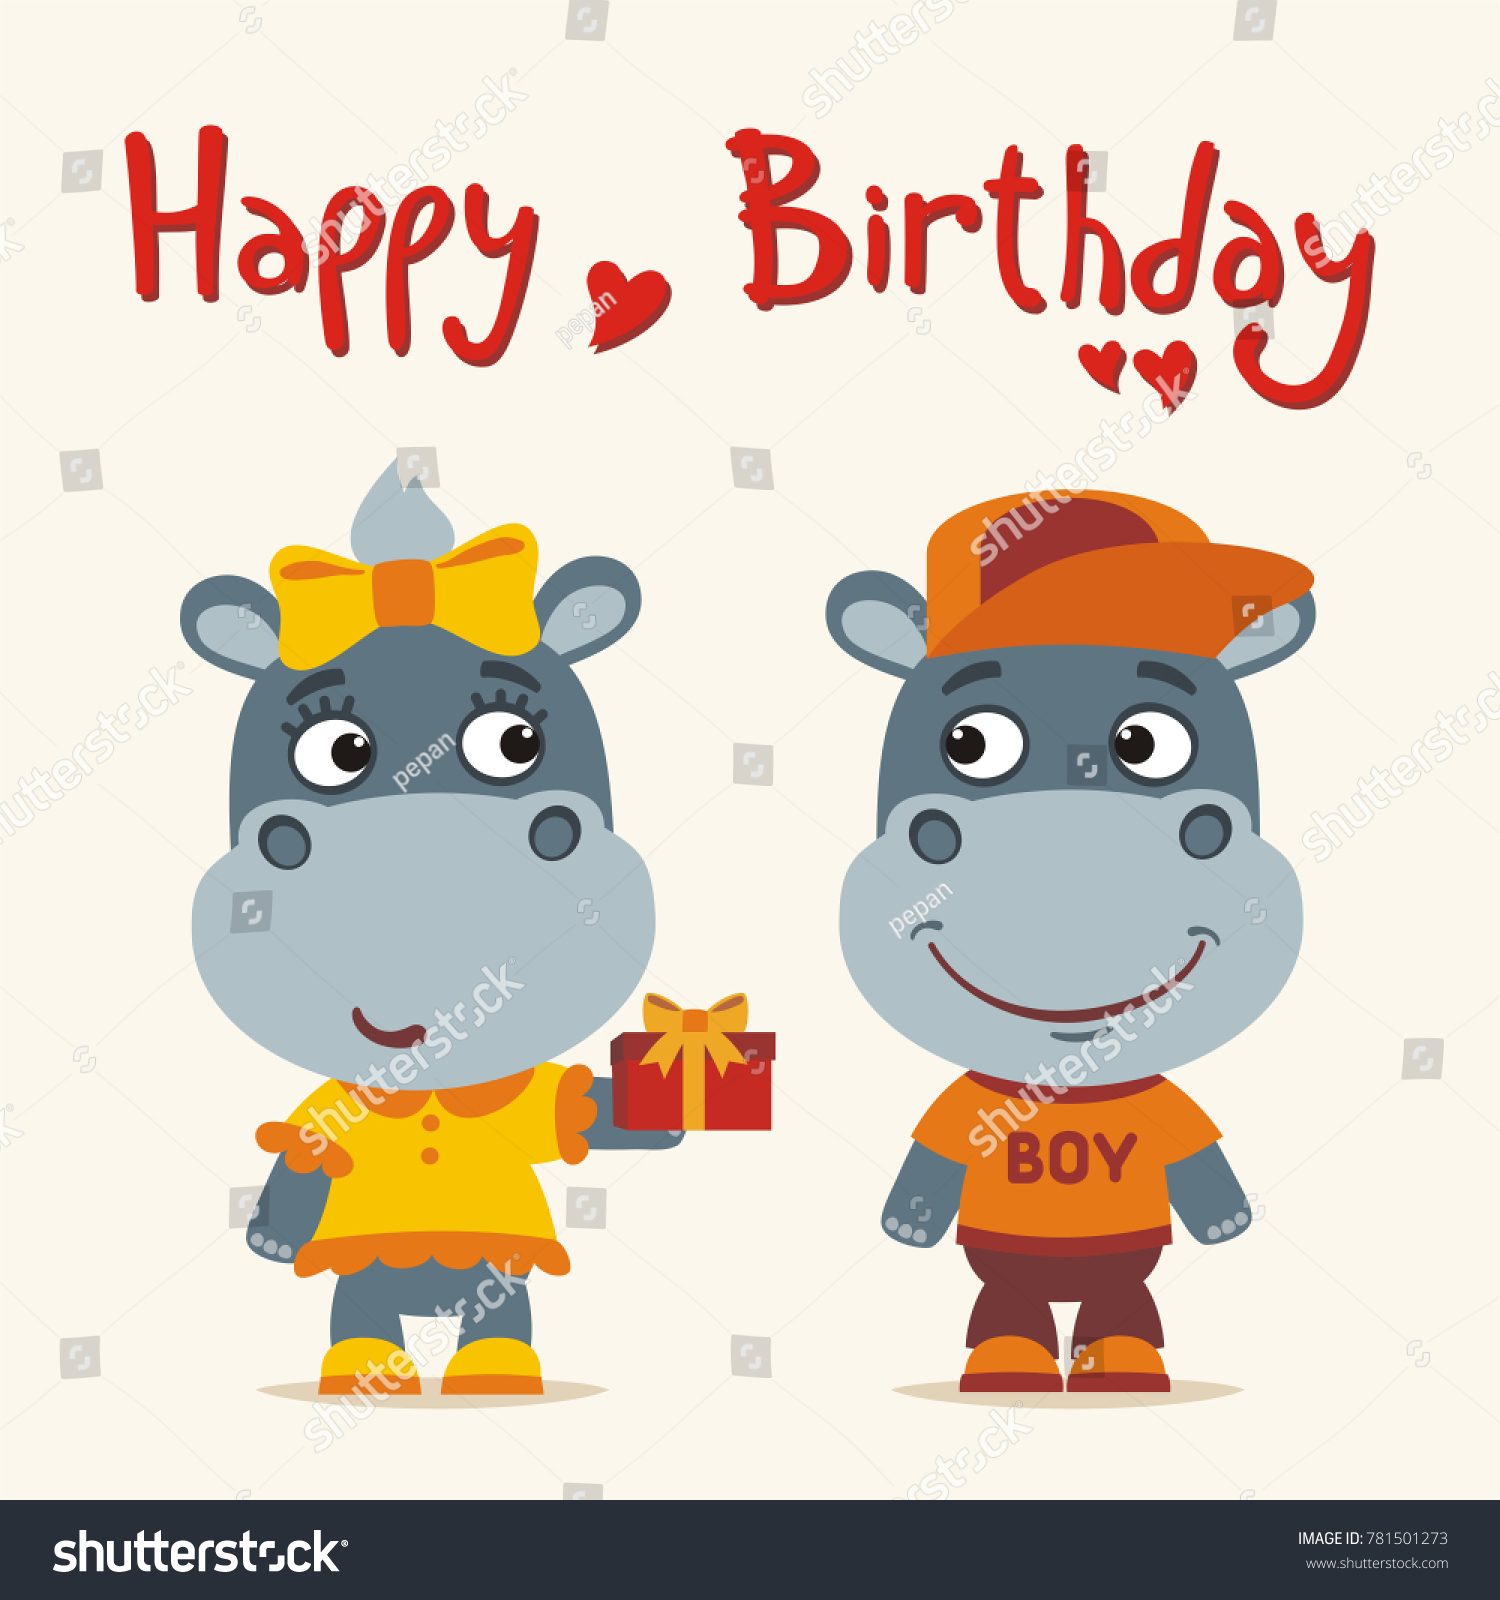 Happy birthday greeting card funny hippo stock vector 781501273 happy birthday greeting card funny hippo girl gives gift to boy m4hsunfo